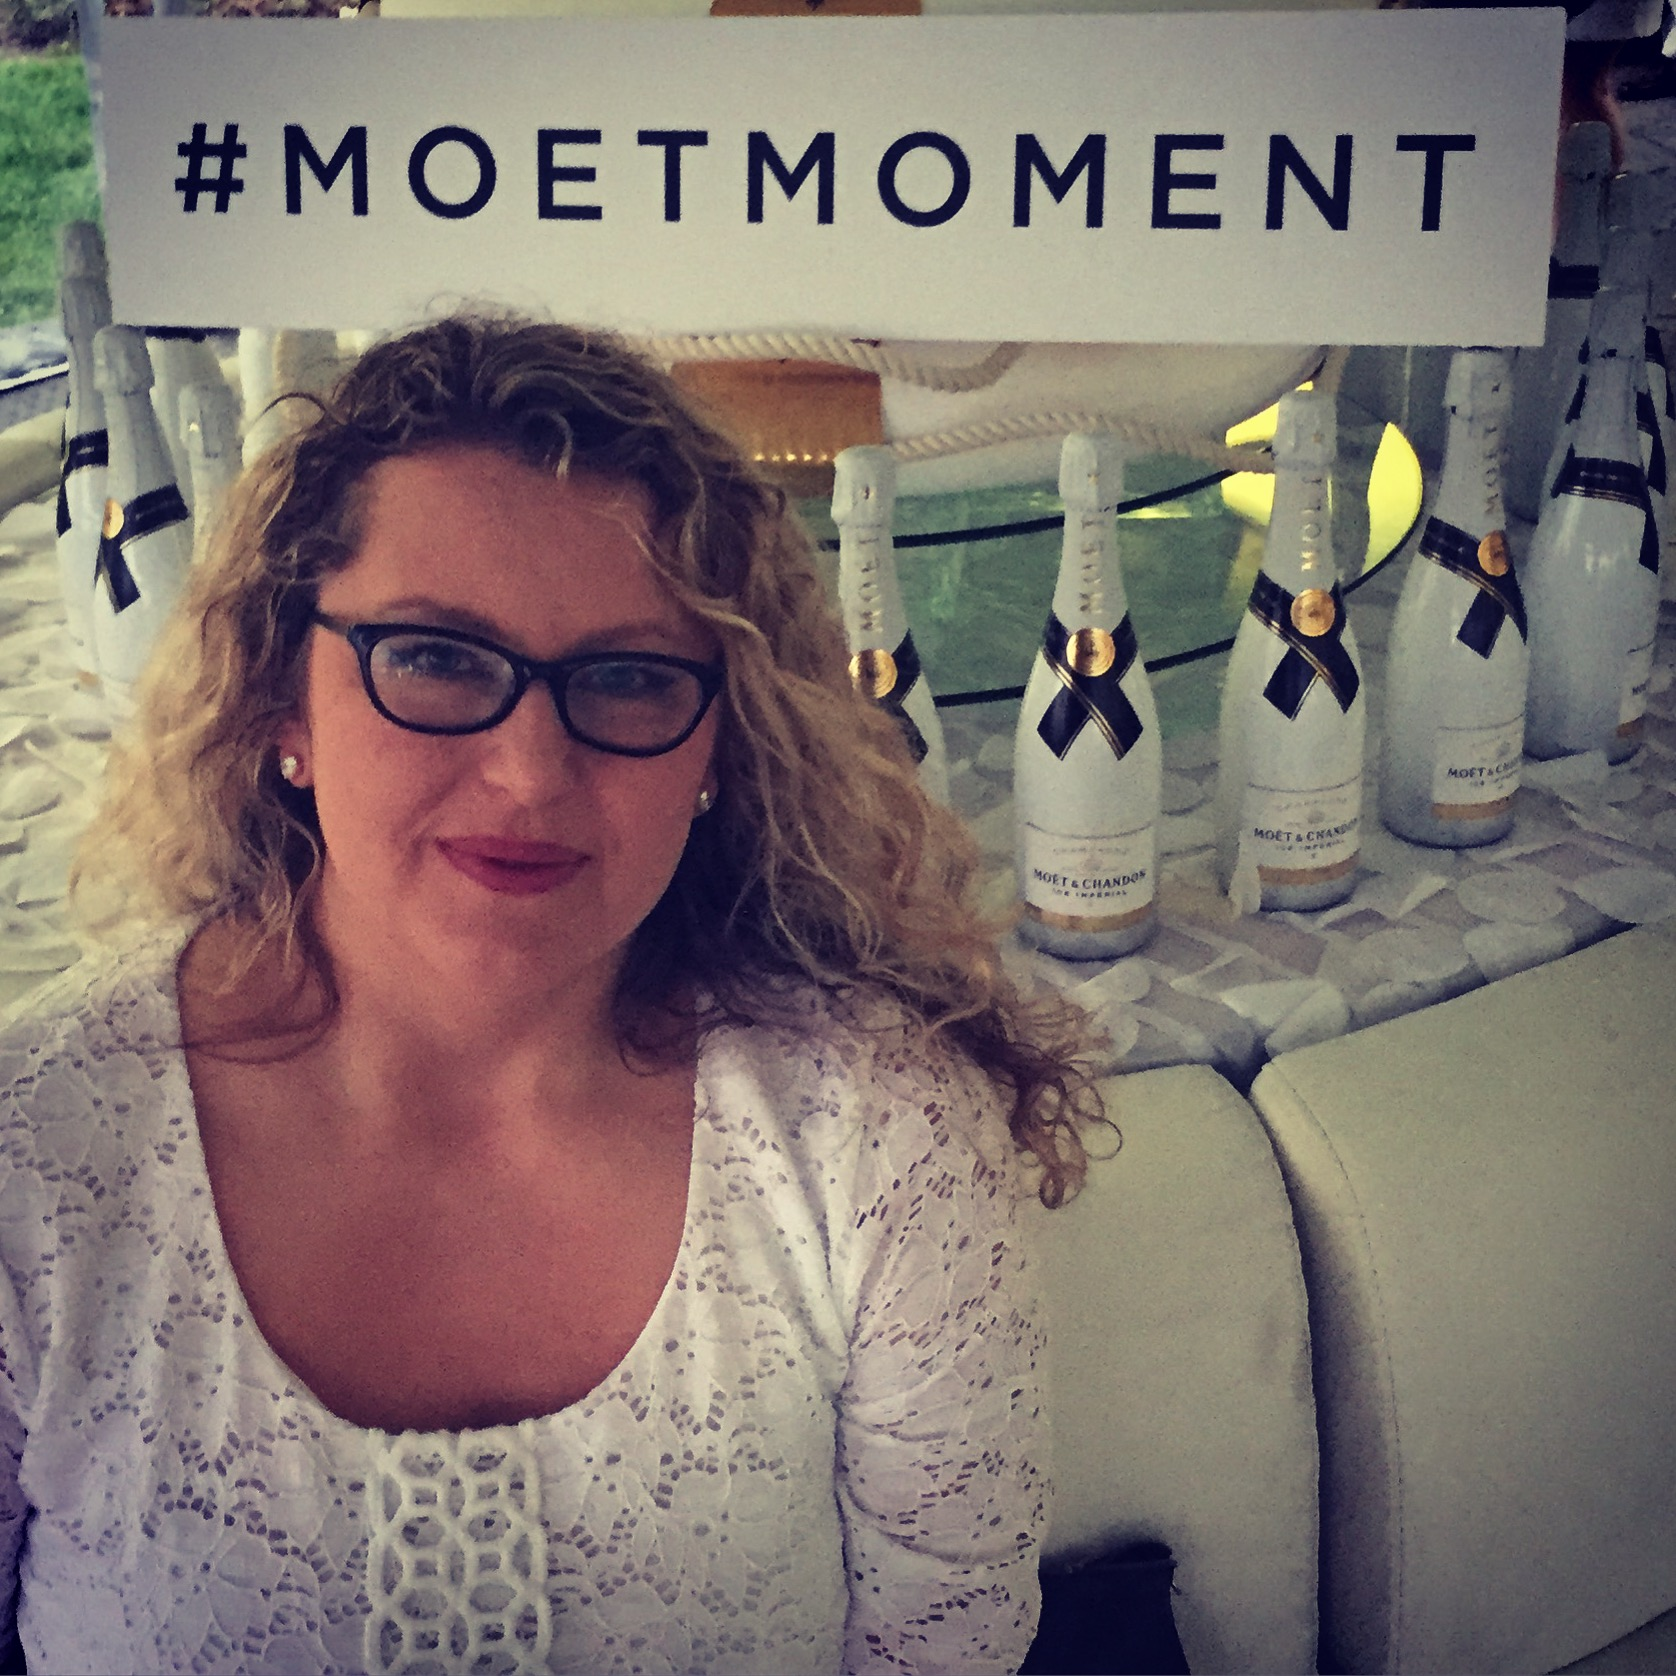 Me, last night, at Moet & Chandon's Derby in a Bottle party